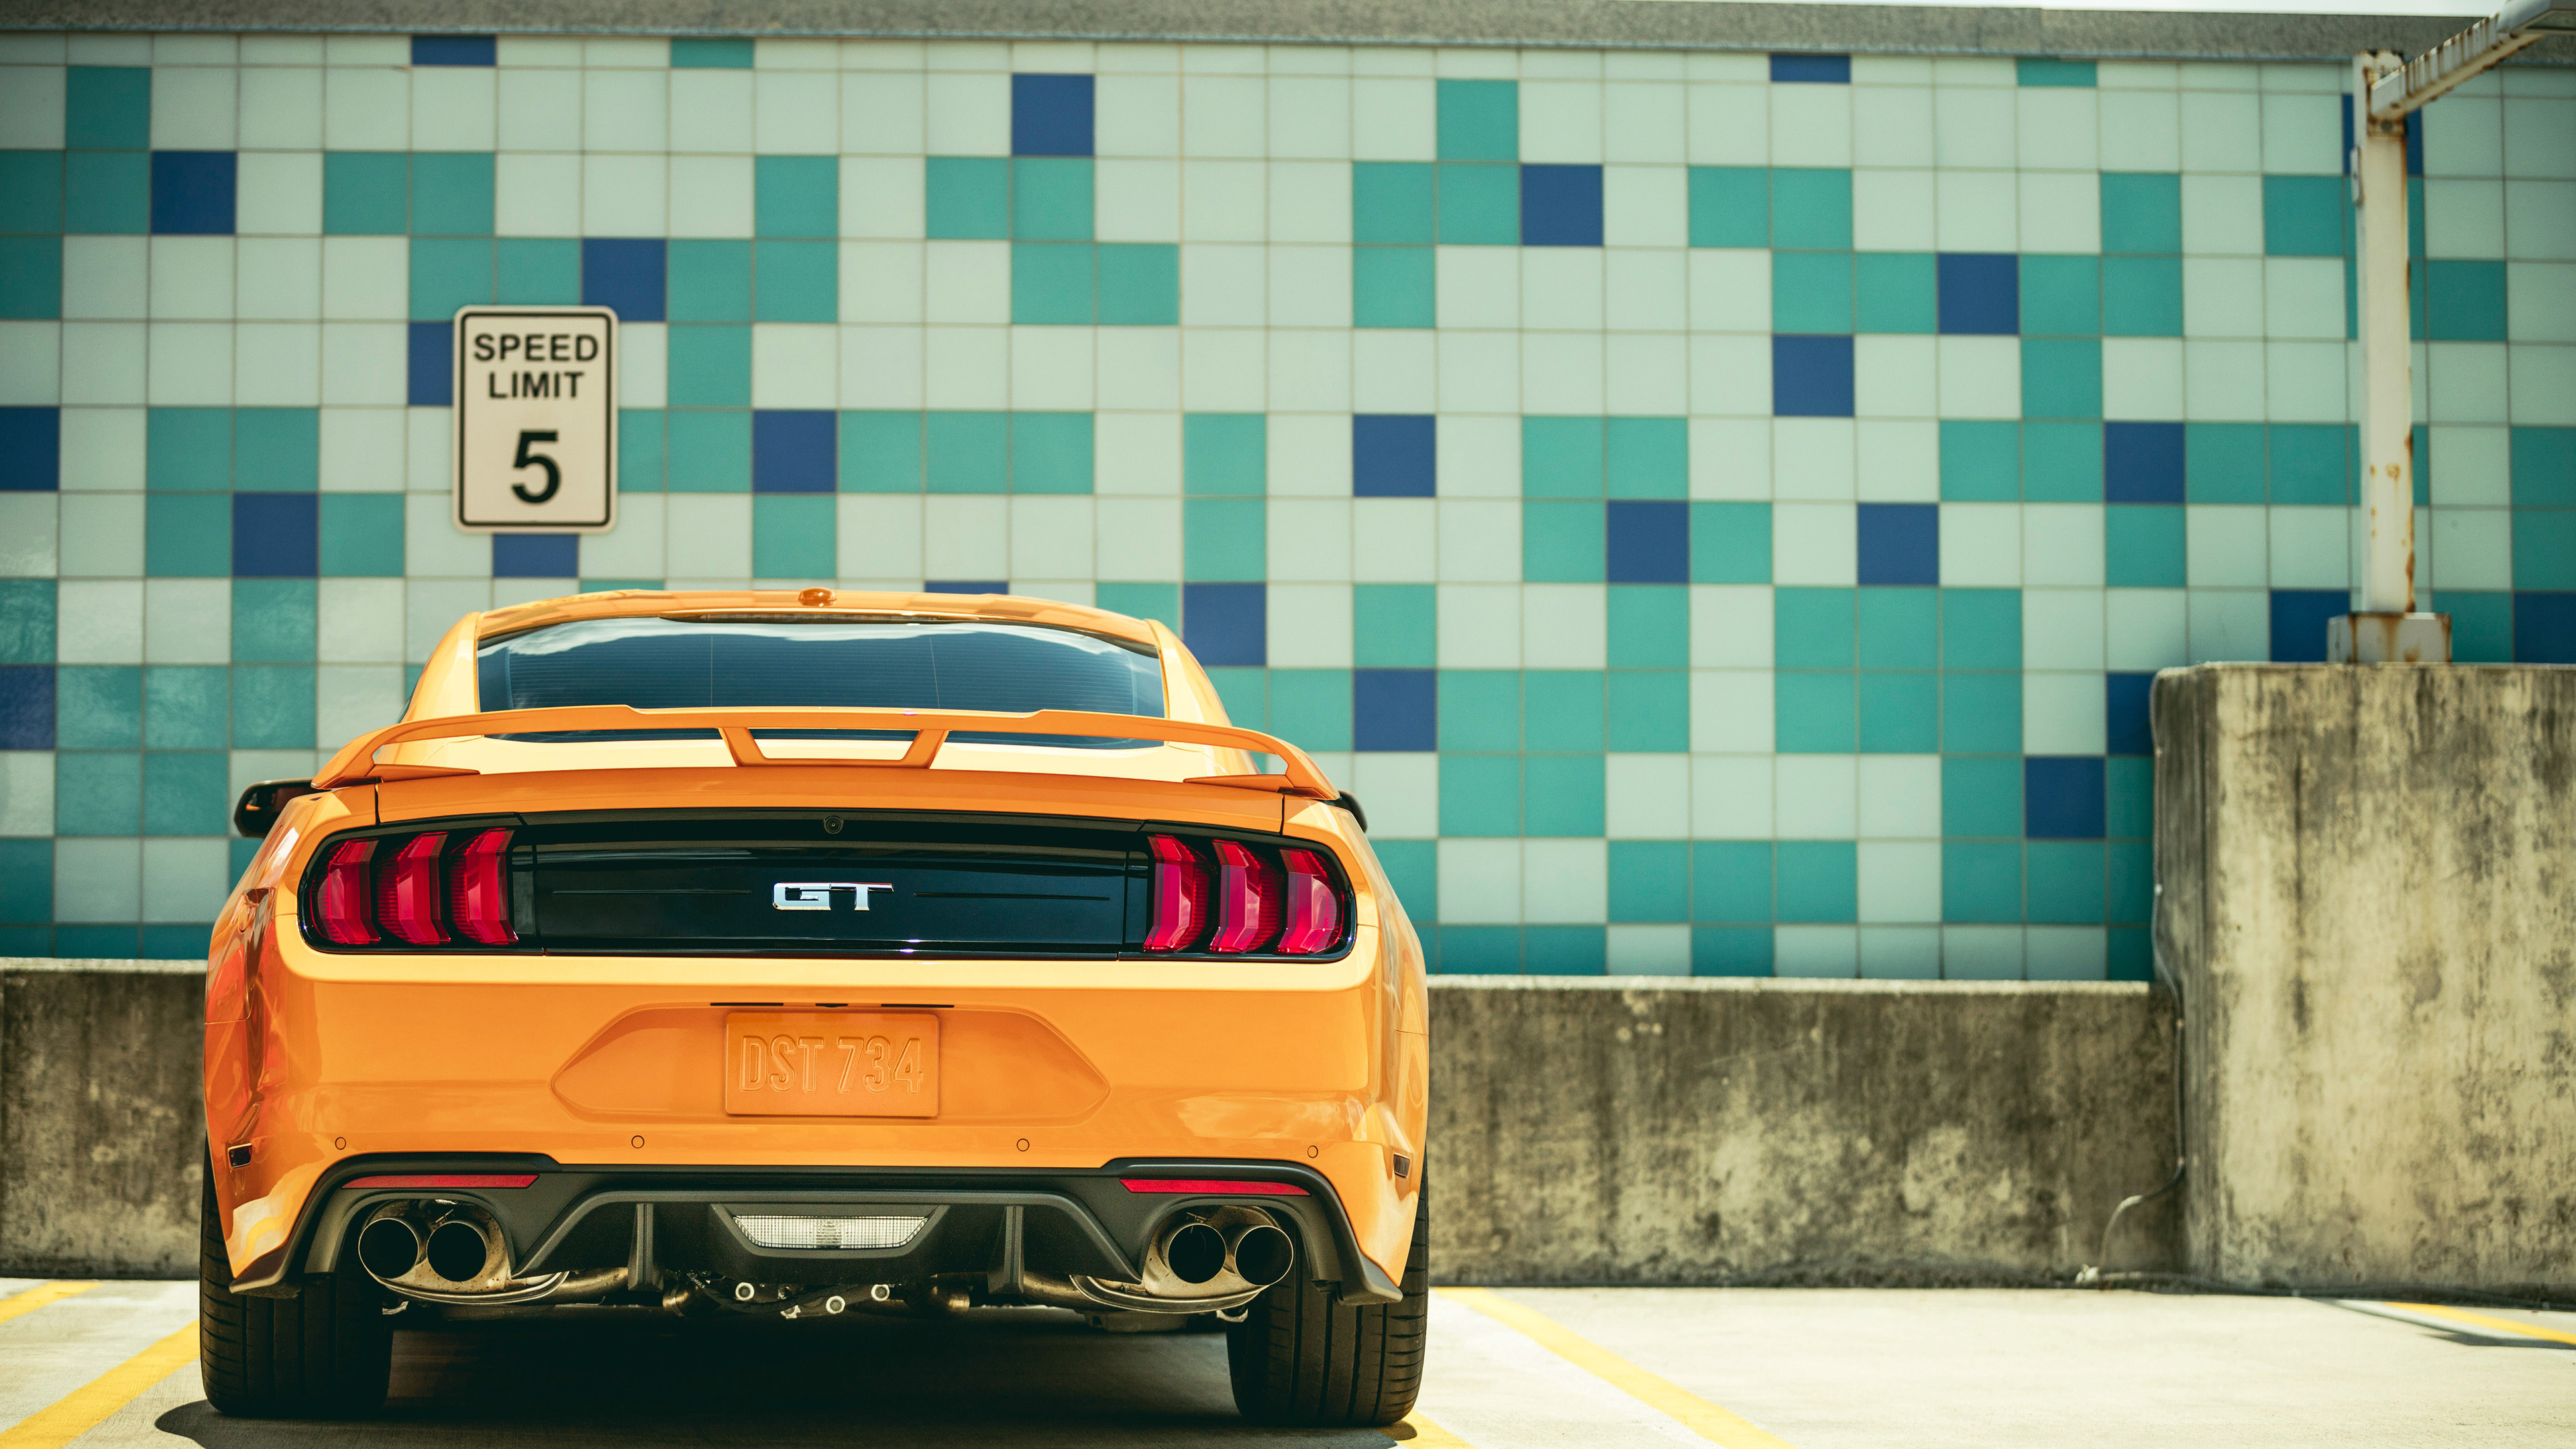 2018 ford mustang gt fastback rear 1539107972 - 2018 Ford Mustang GT Fastback Rear - hd-wallpapers, ford mustang wallpapers, cars wallpapers, 4k-wallpapers, 2018 cars wallpapers